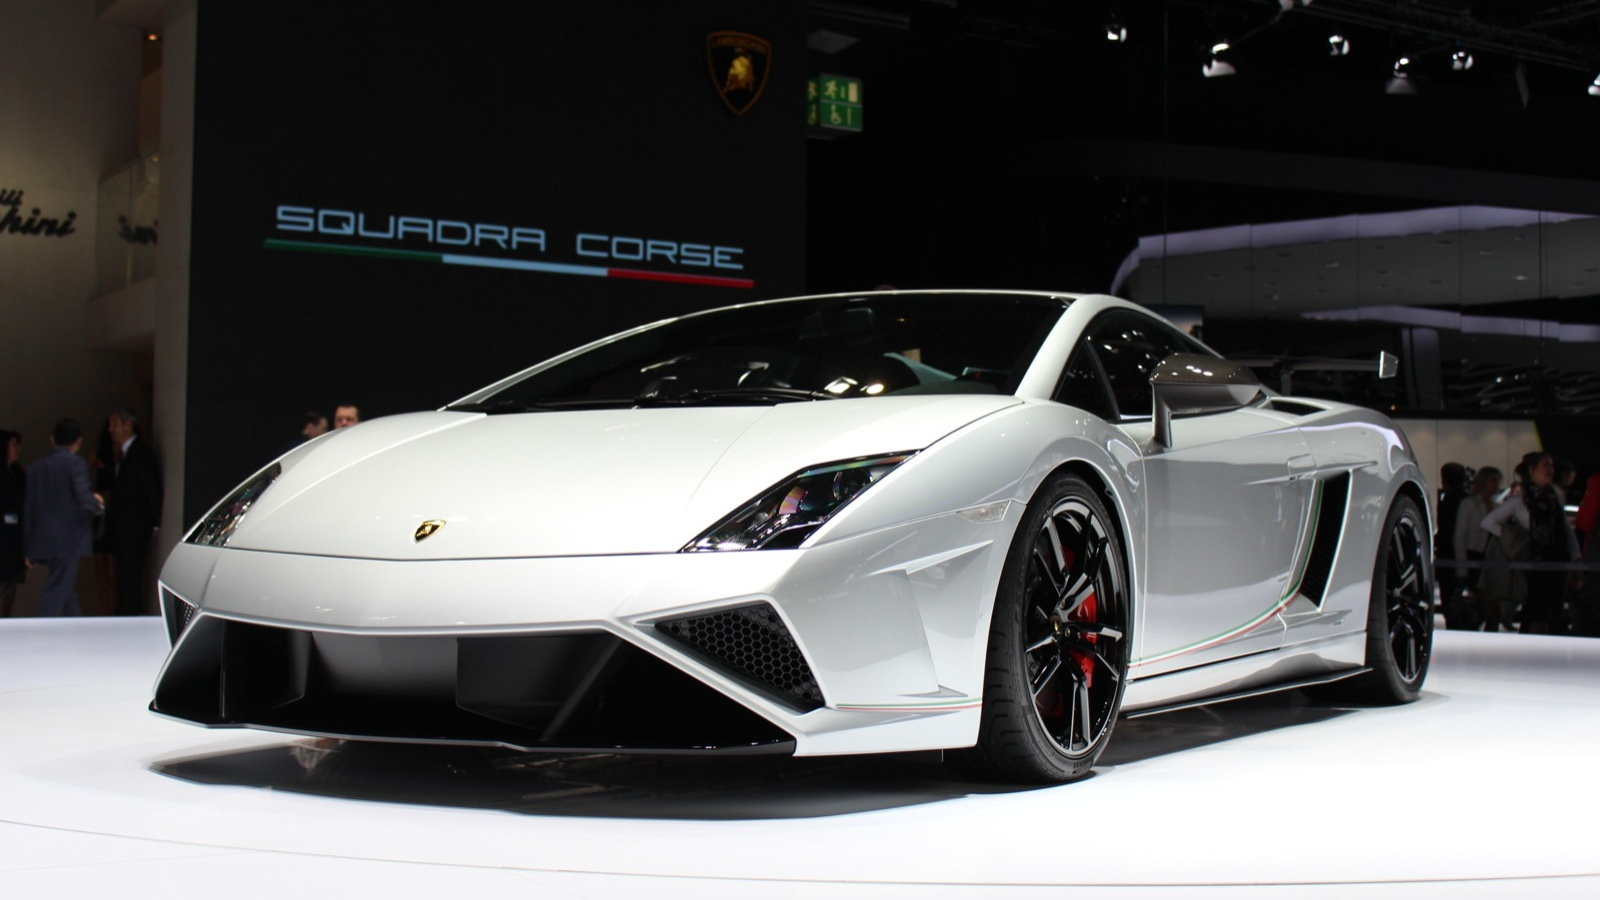 Lamborghini Gallardo Squadra Corse Hits The Track Video